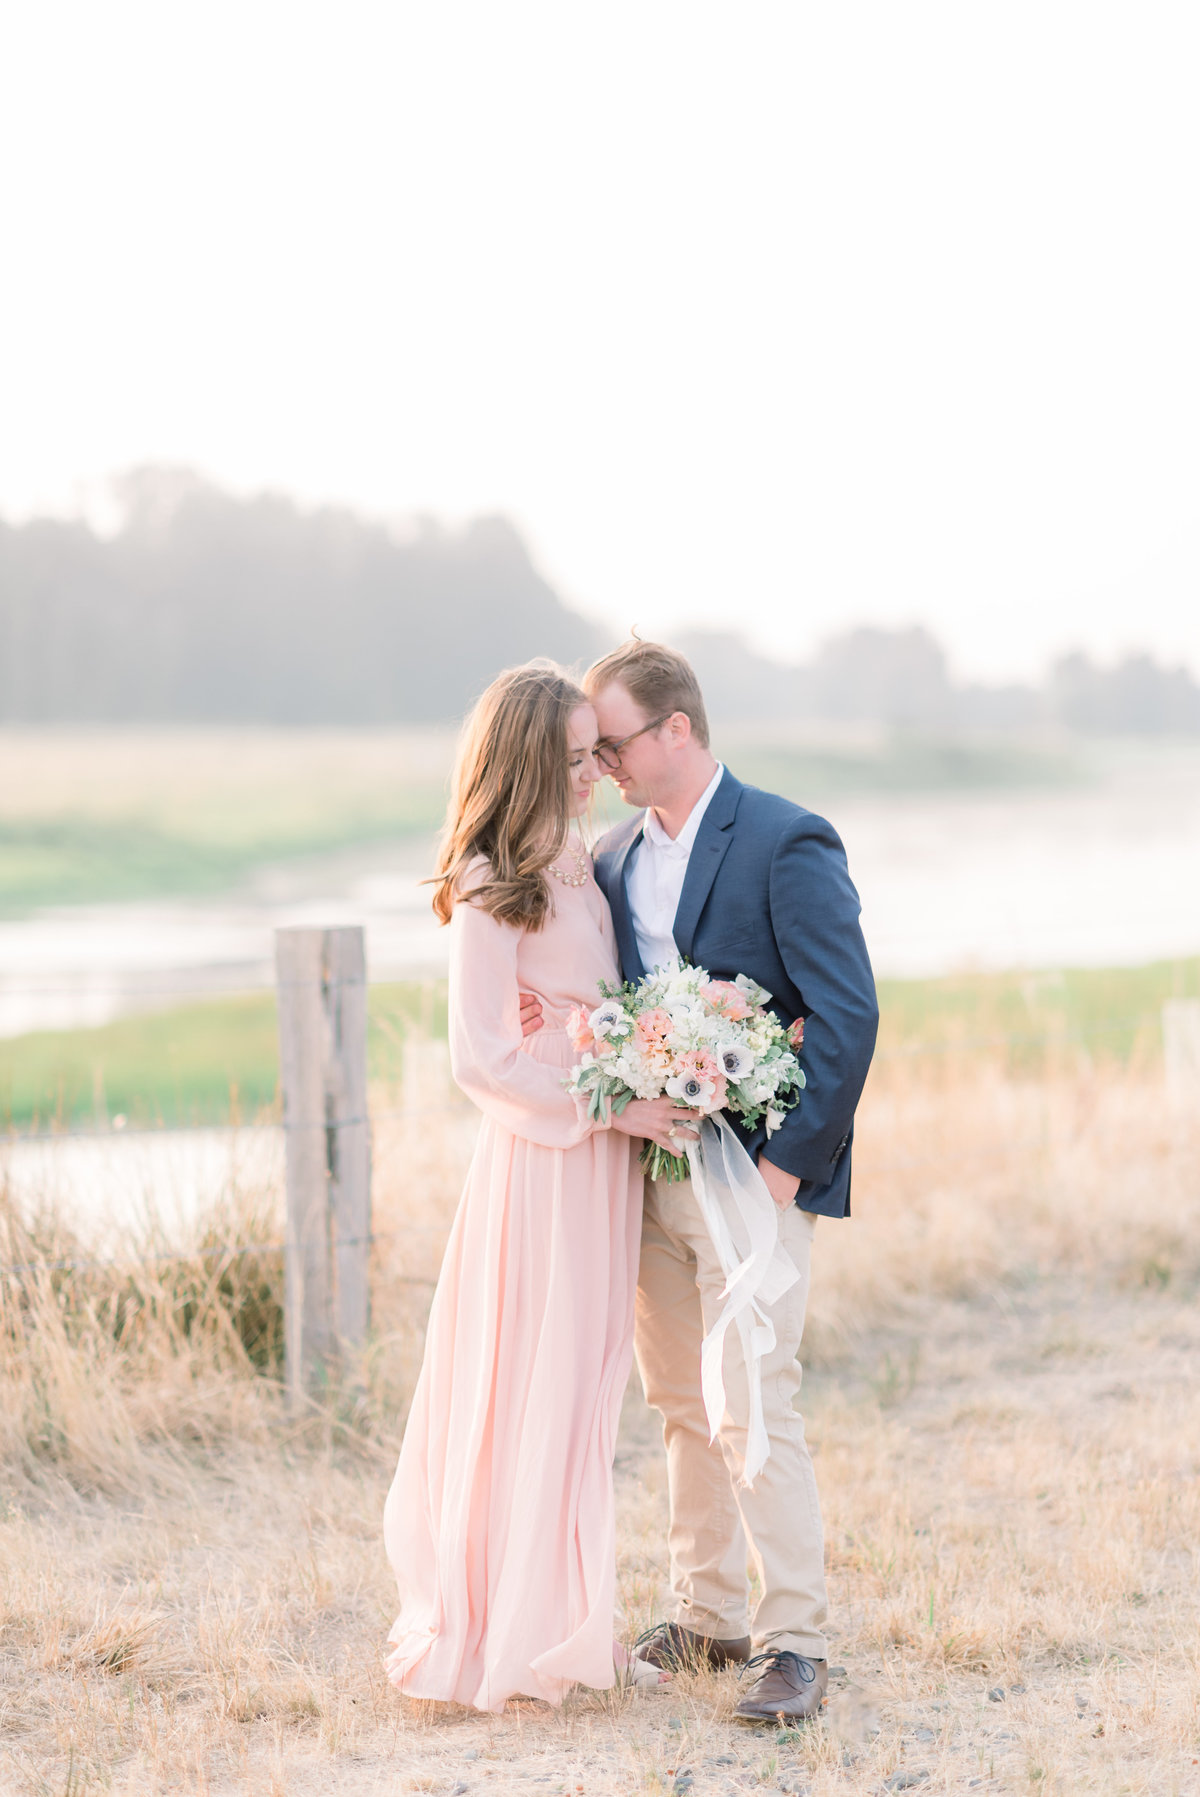 Kalahan and Sean Photography Wedding Engagement Photographer Portland Oregon Light Airy Destination Luxury2